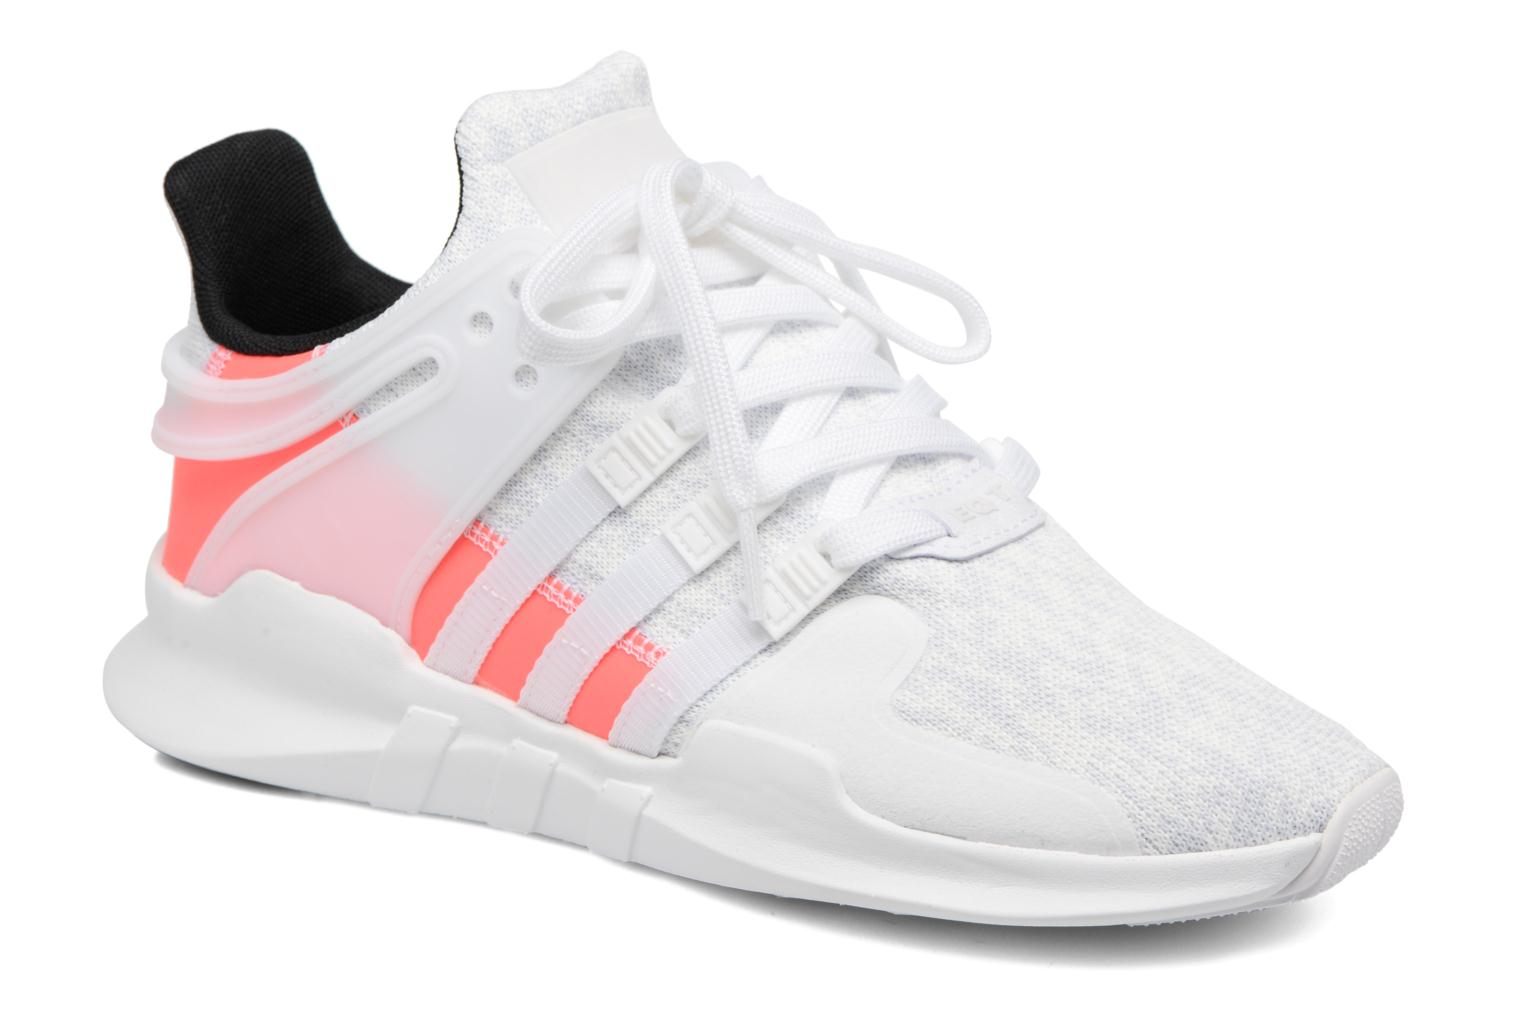 Eqt Support Adv W Blacry/Ftwbla/Turbo